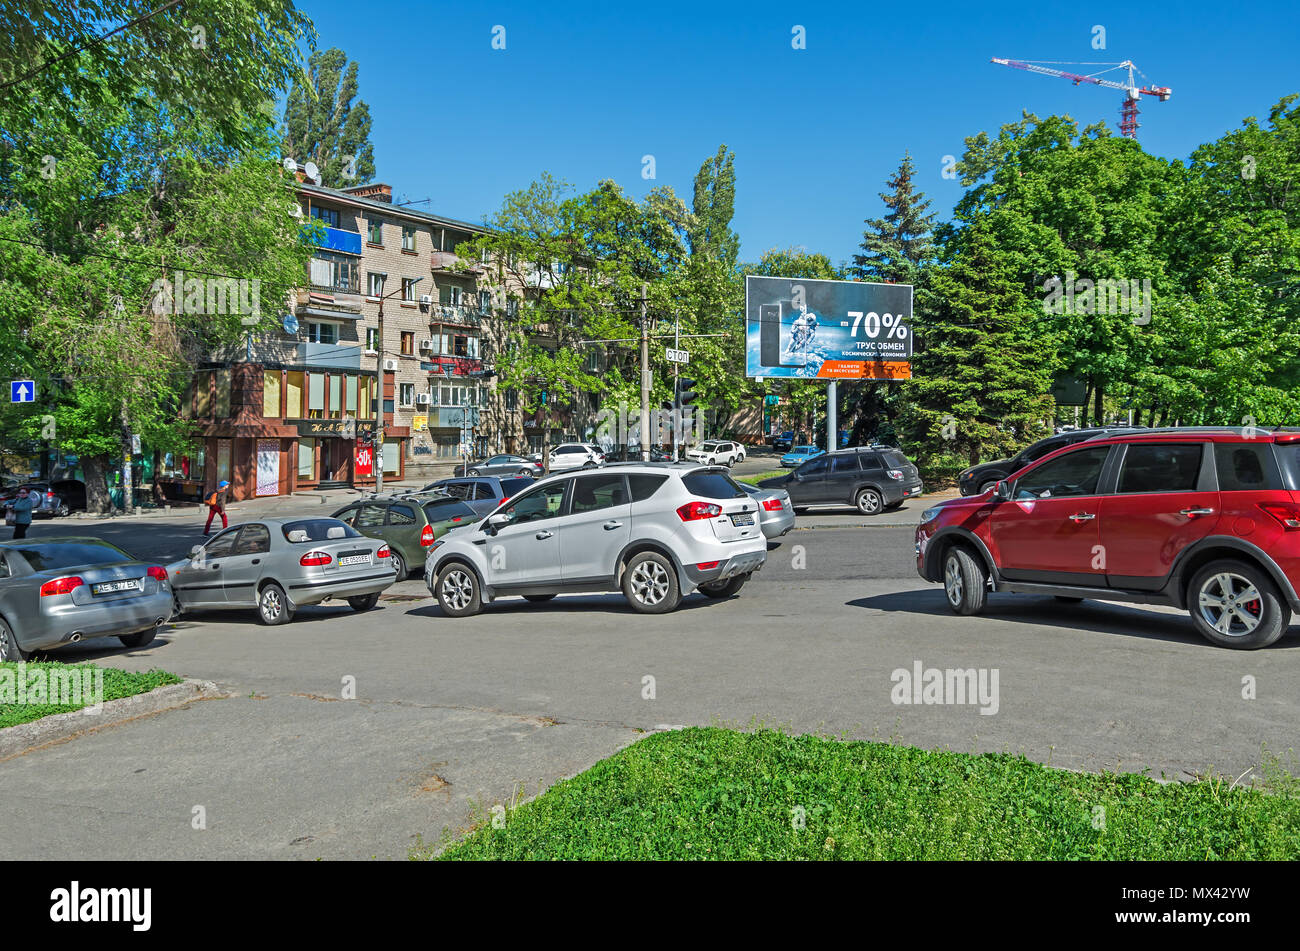 Dnipro, Ukraine - May 17, 2017: Illegal parking on a sidewalk in downtown Dnipro. Violation of parking rules and rights of pedestrians with the full c - Stock Image